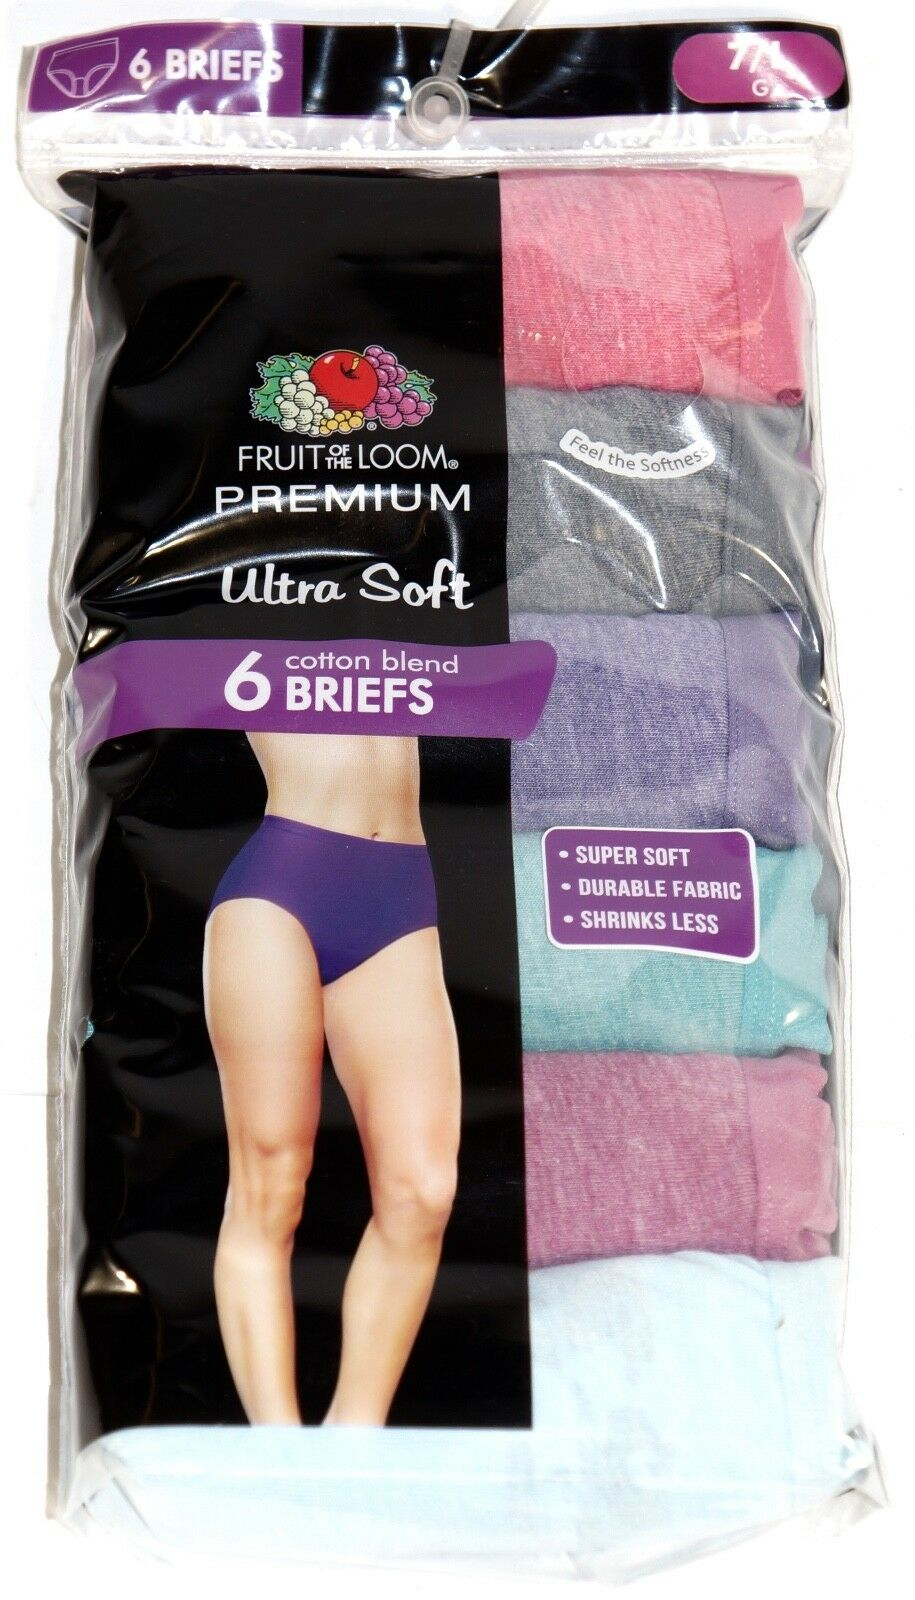 New 6 Pack Women/'s Briefs Premium Ultra Soft Underwear by Fruit of the Loom